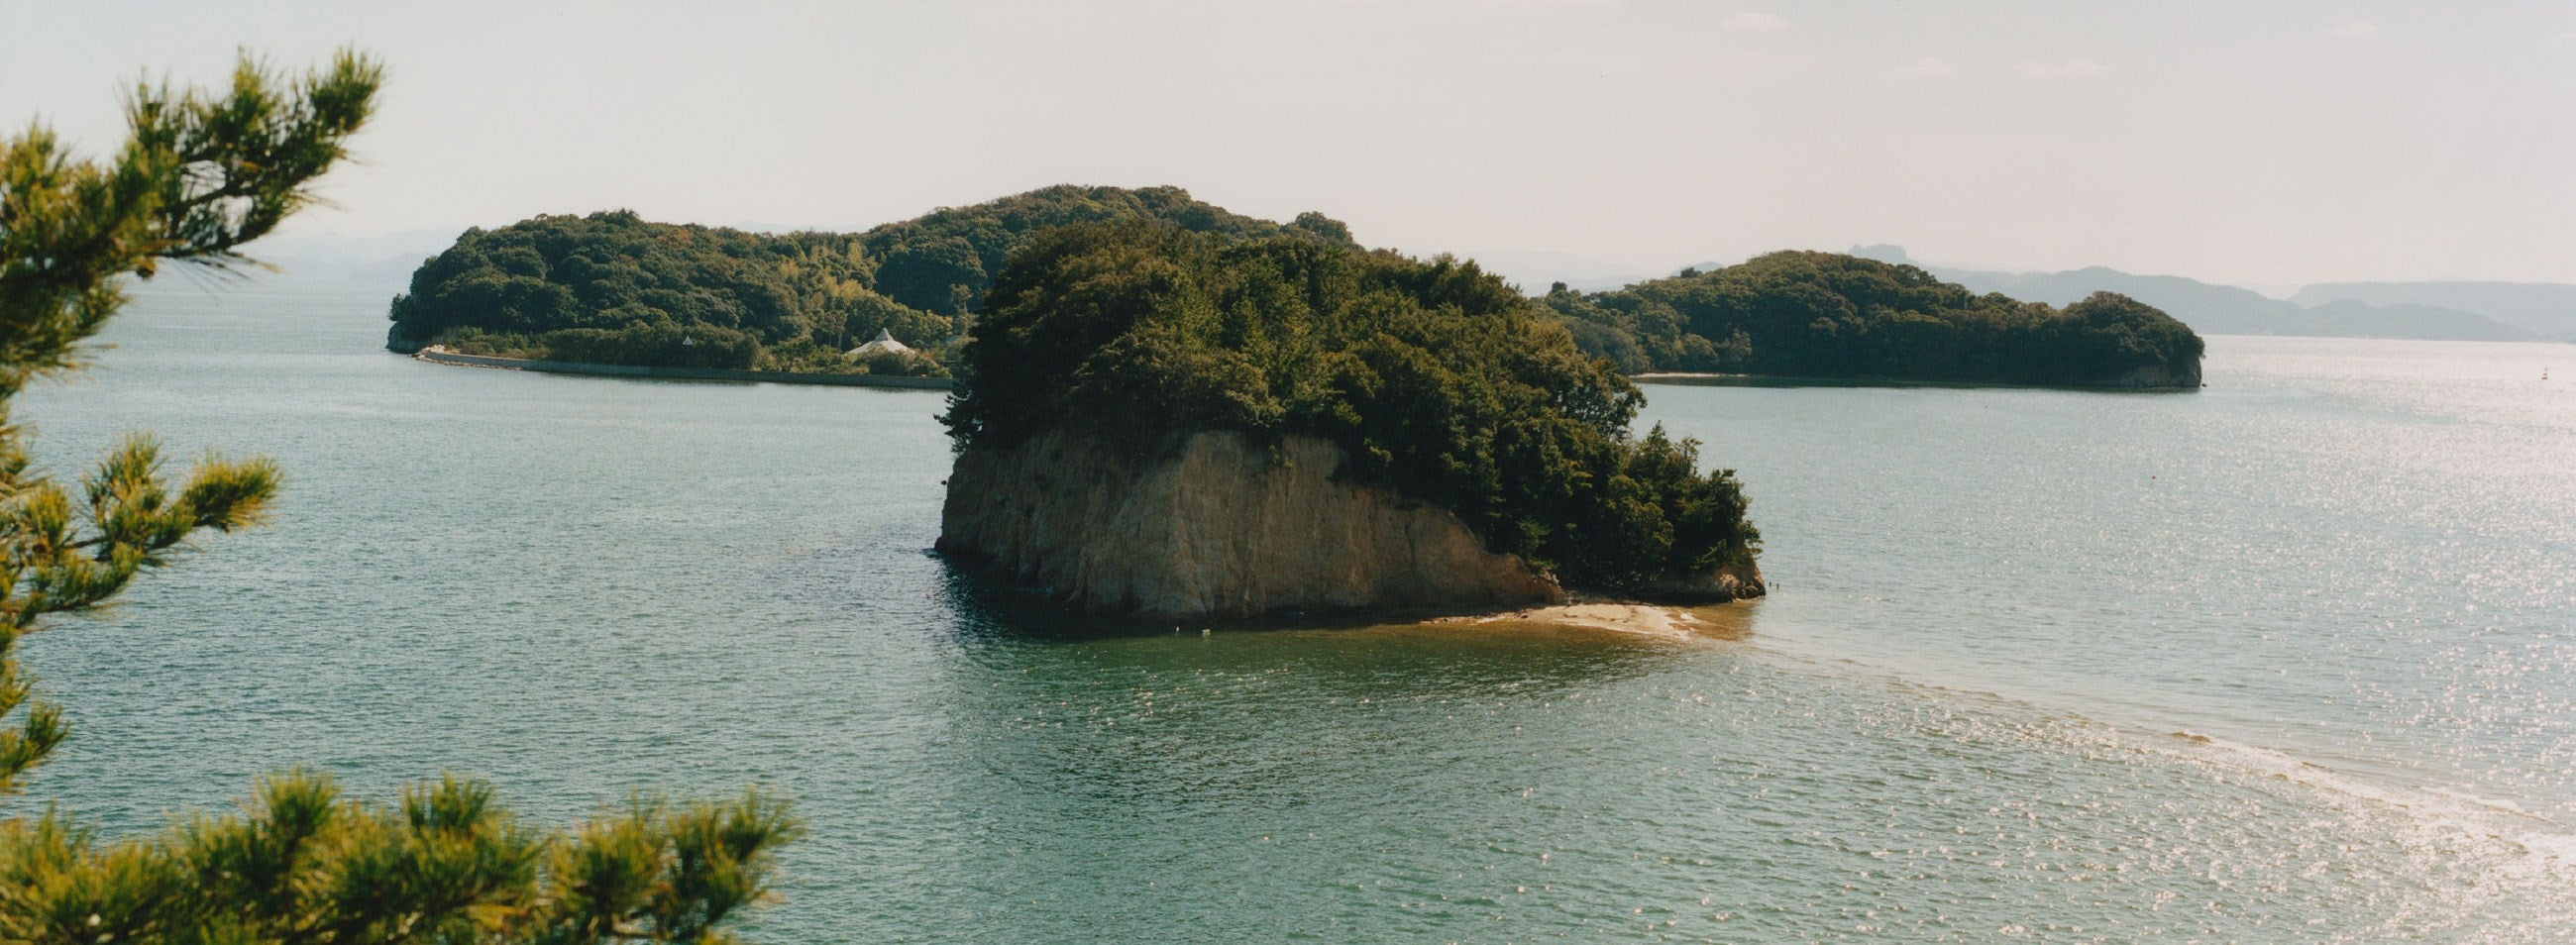 Tree covered rocky island in a lake